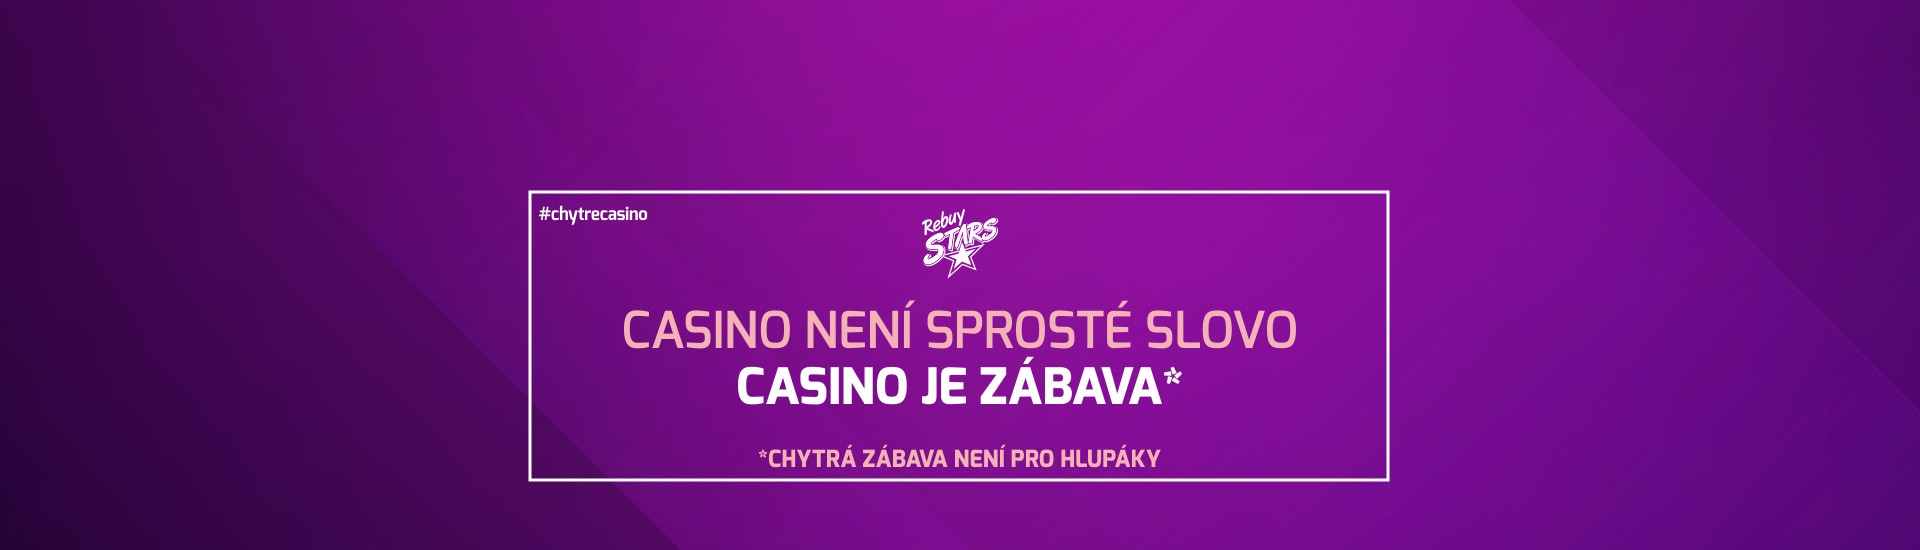 chytrecasino_slider_web_d